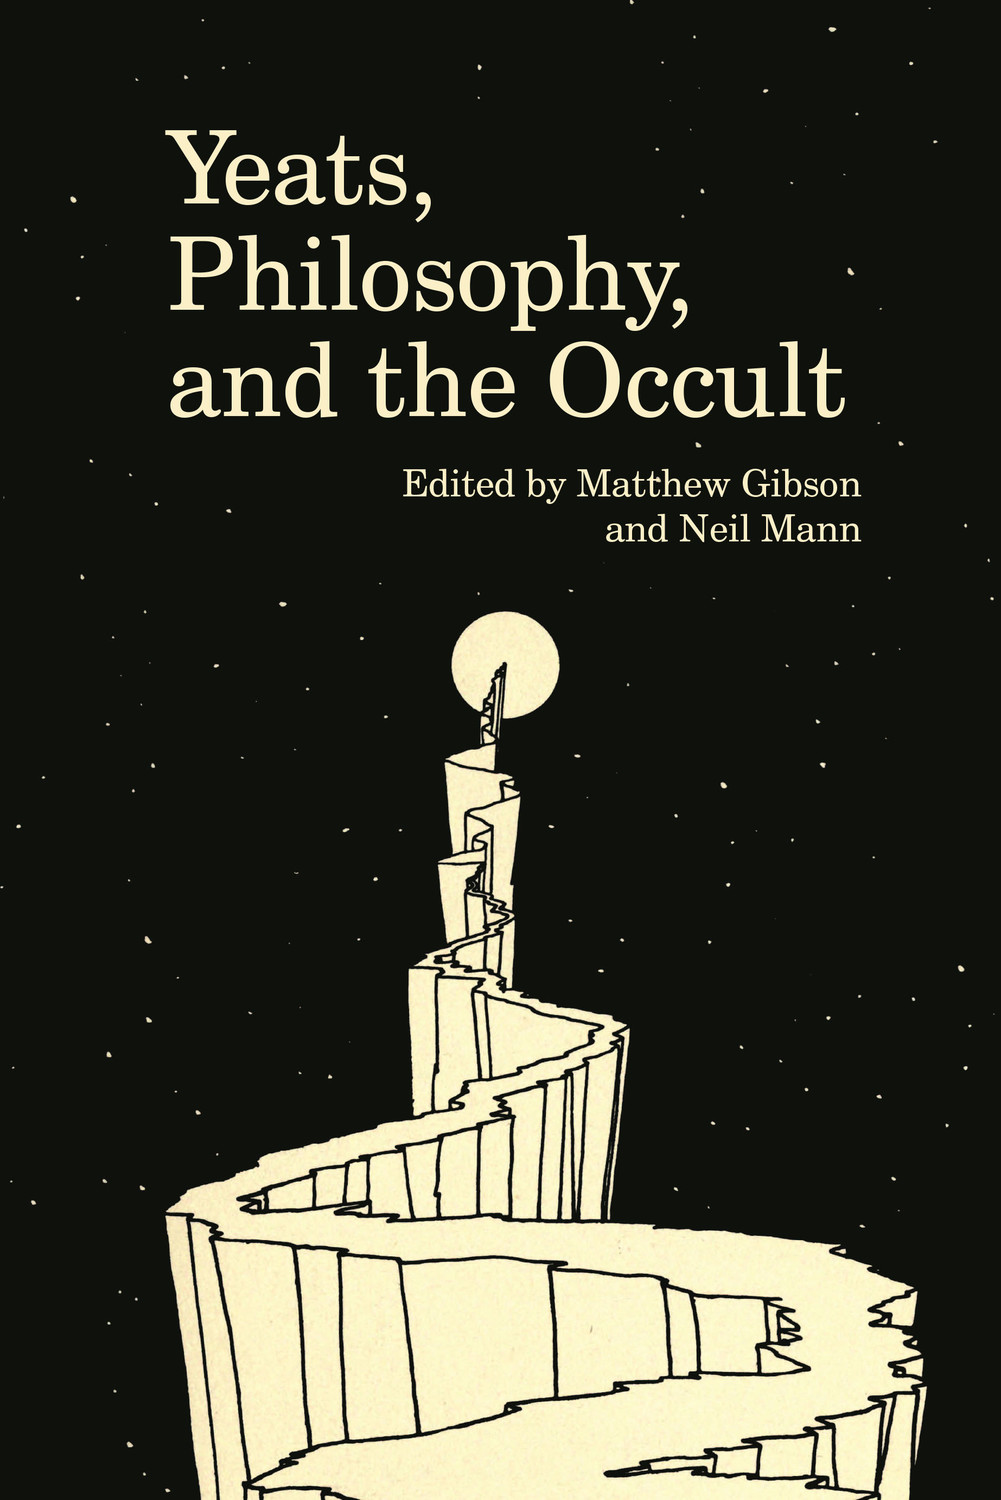 Yeats, Philosophy, and the Occult